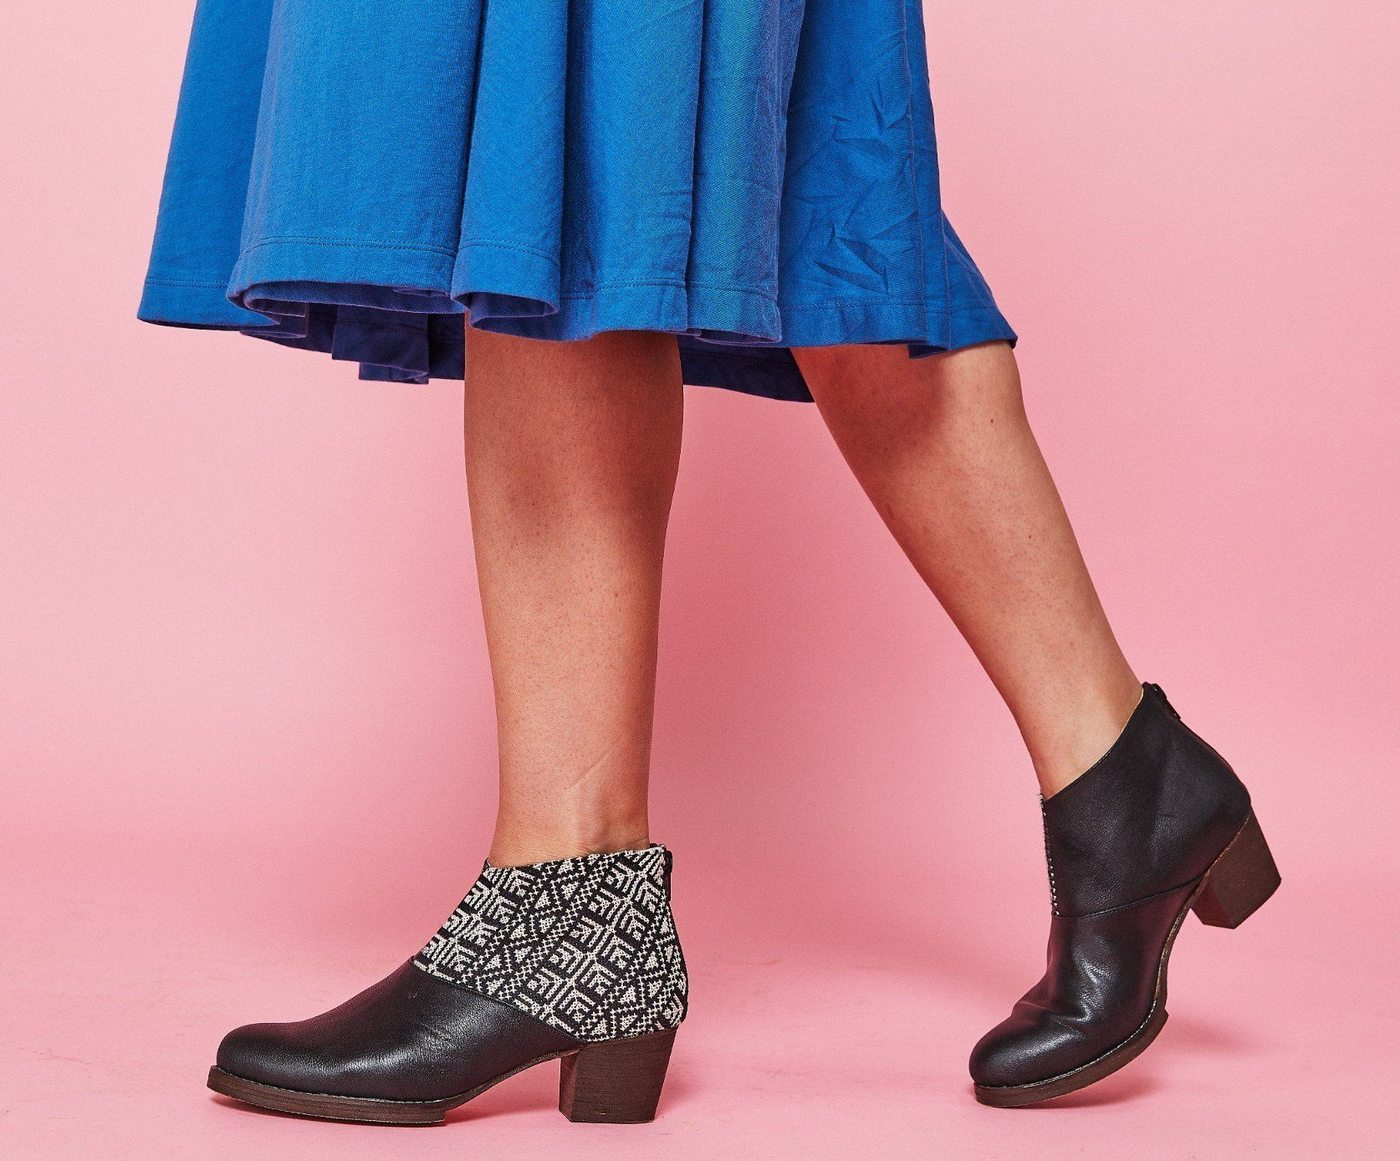 ethical ankle boots